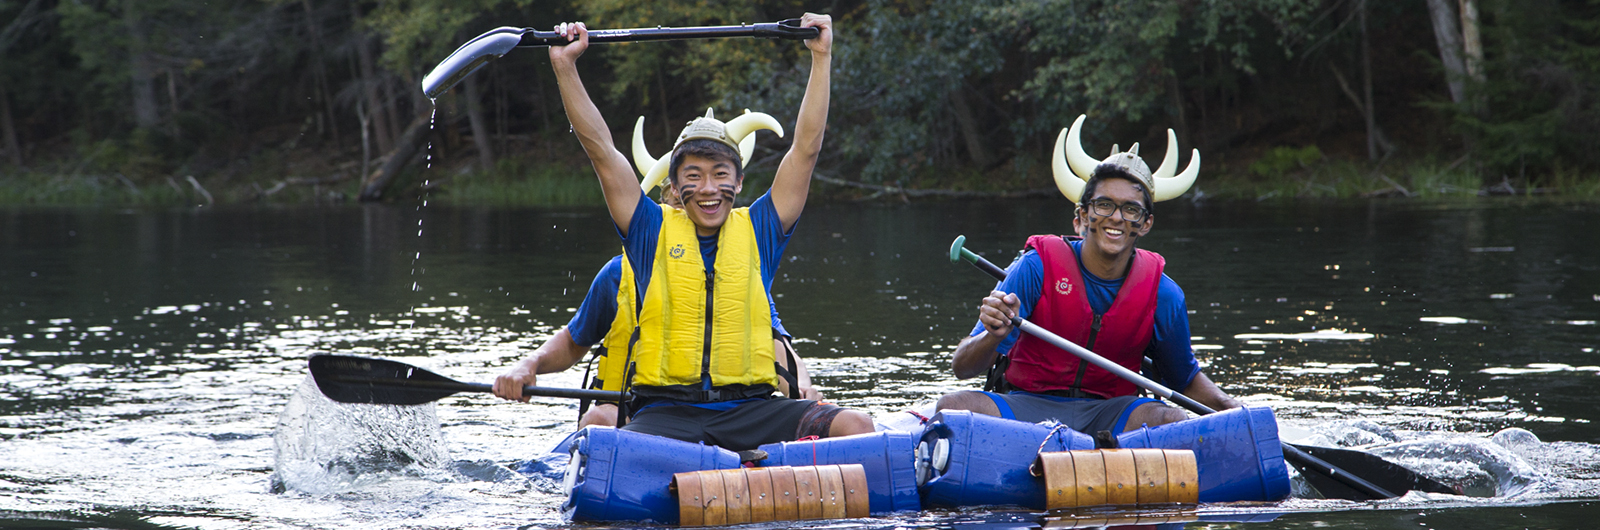 Students in fun boat race, wearing costumes